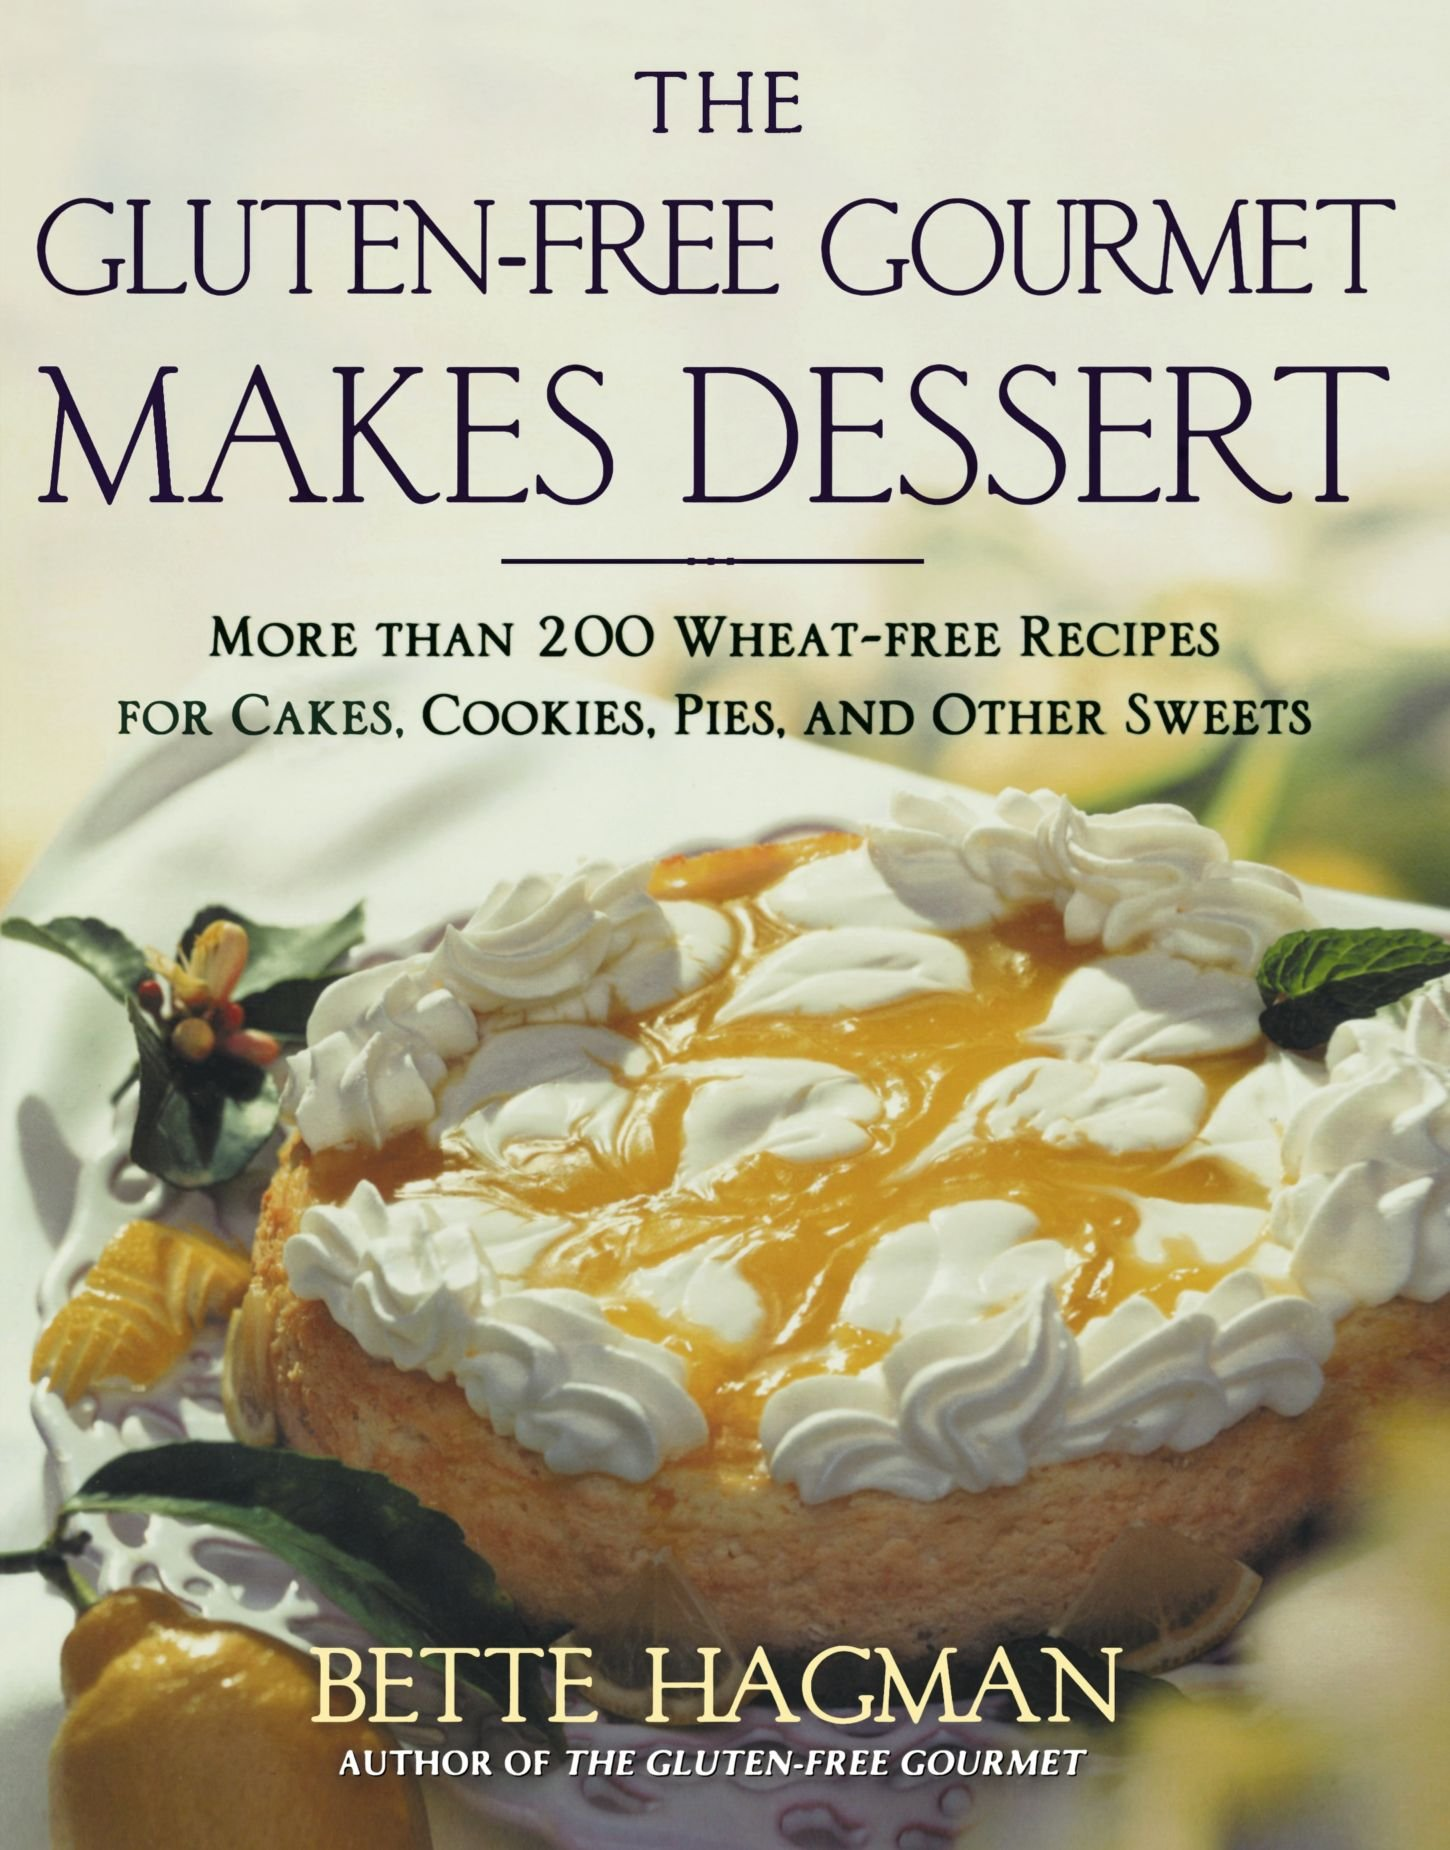 The Gluten-free Gourmet Makes Dessert: More Than 200 Wheat-free Recipes for Cakes, Cookies, Pies and Other Sweets by Holt Paperbacks